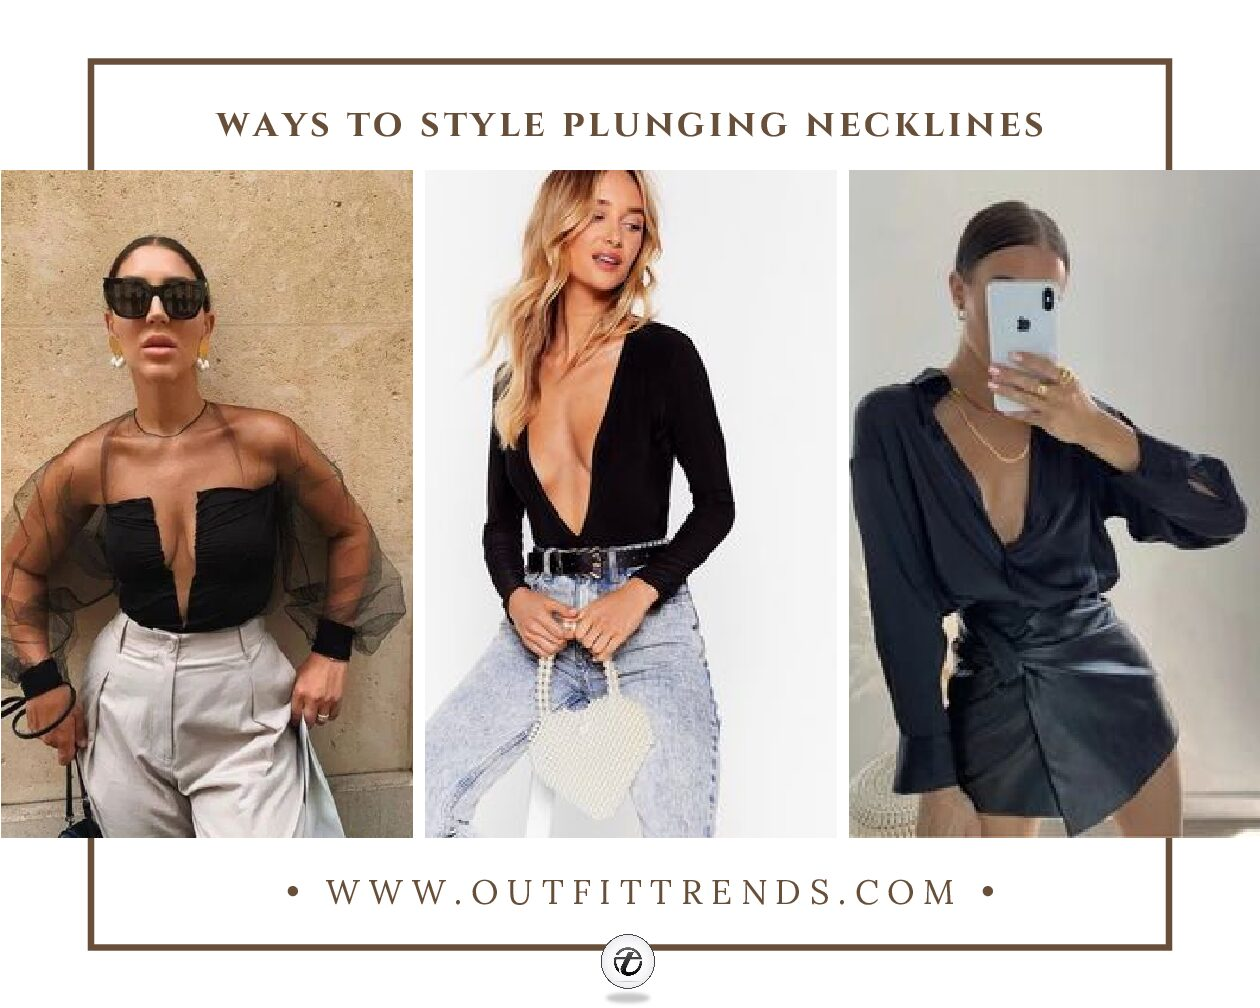 46 Tips on How to Wear Plunging Necklines like a Style Queen